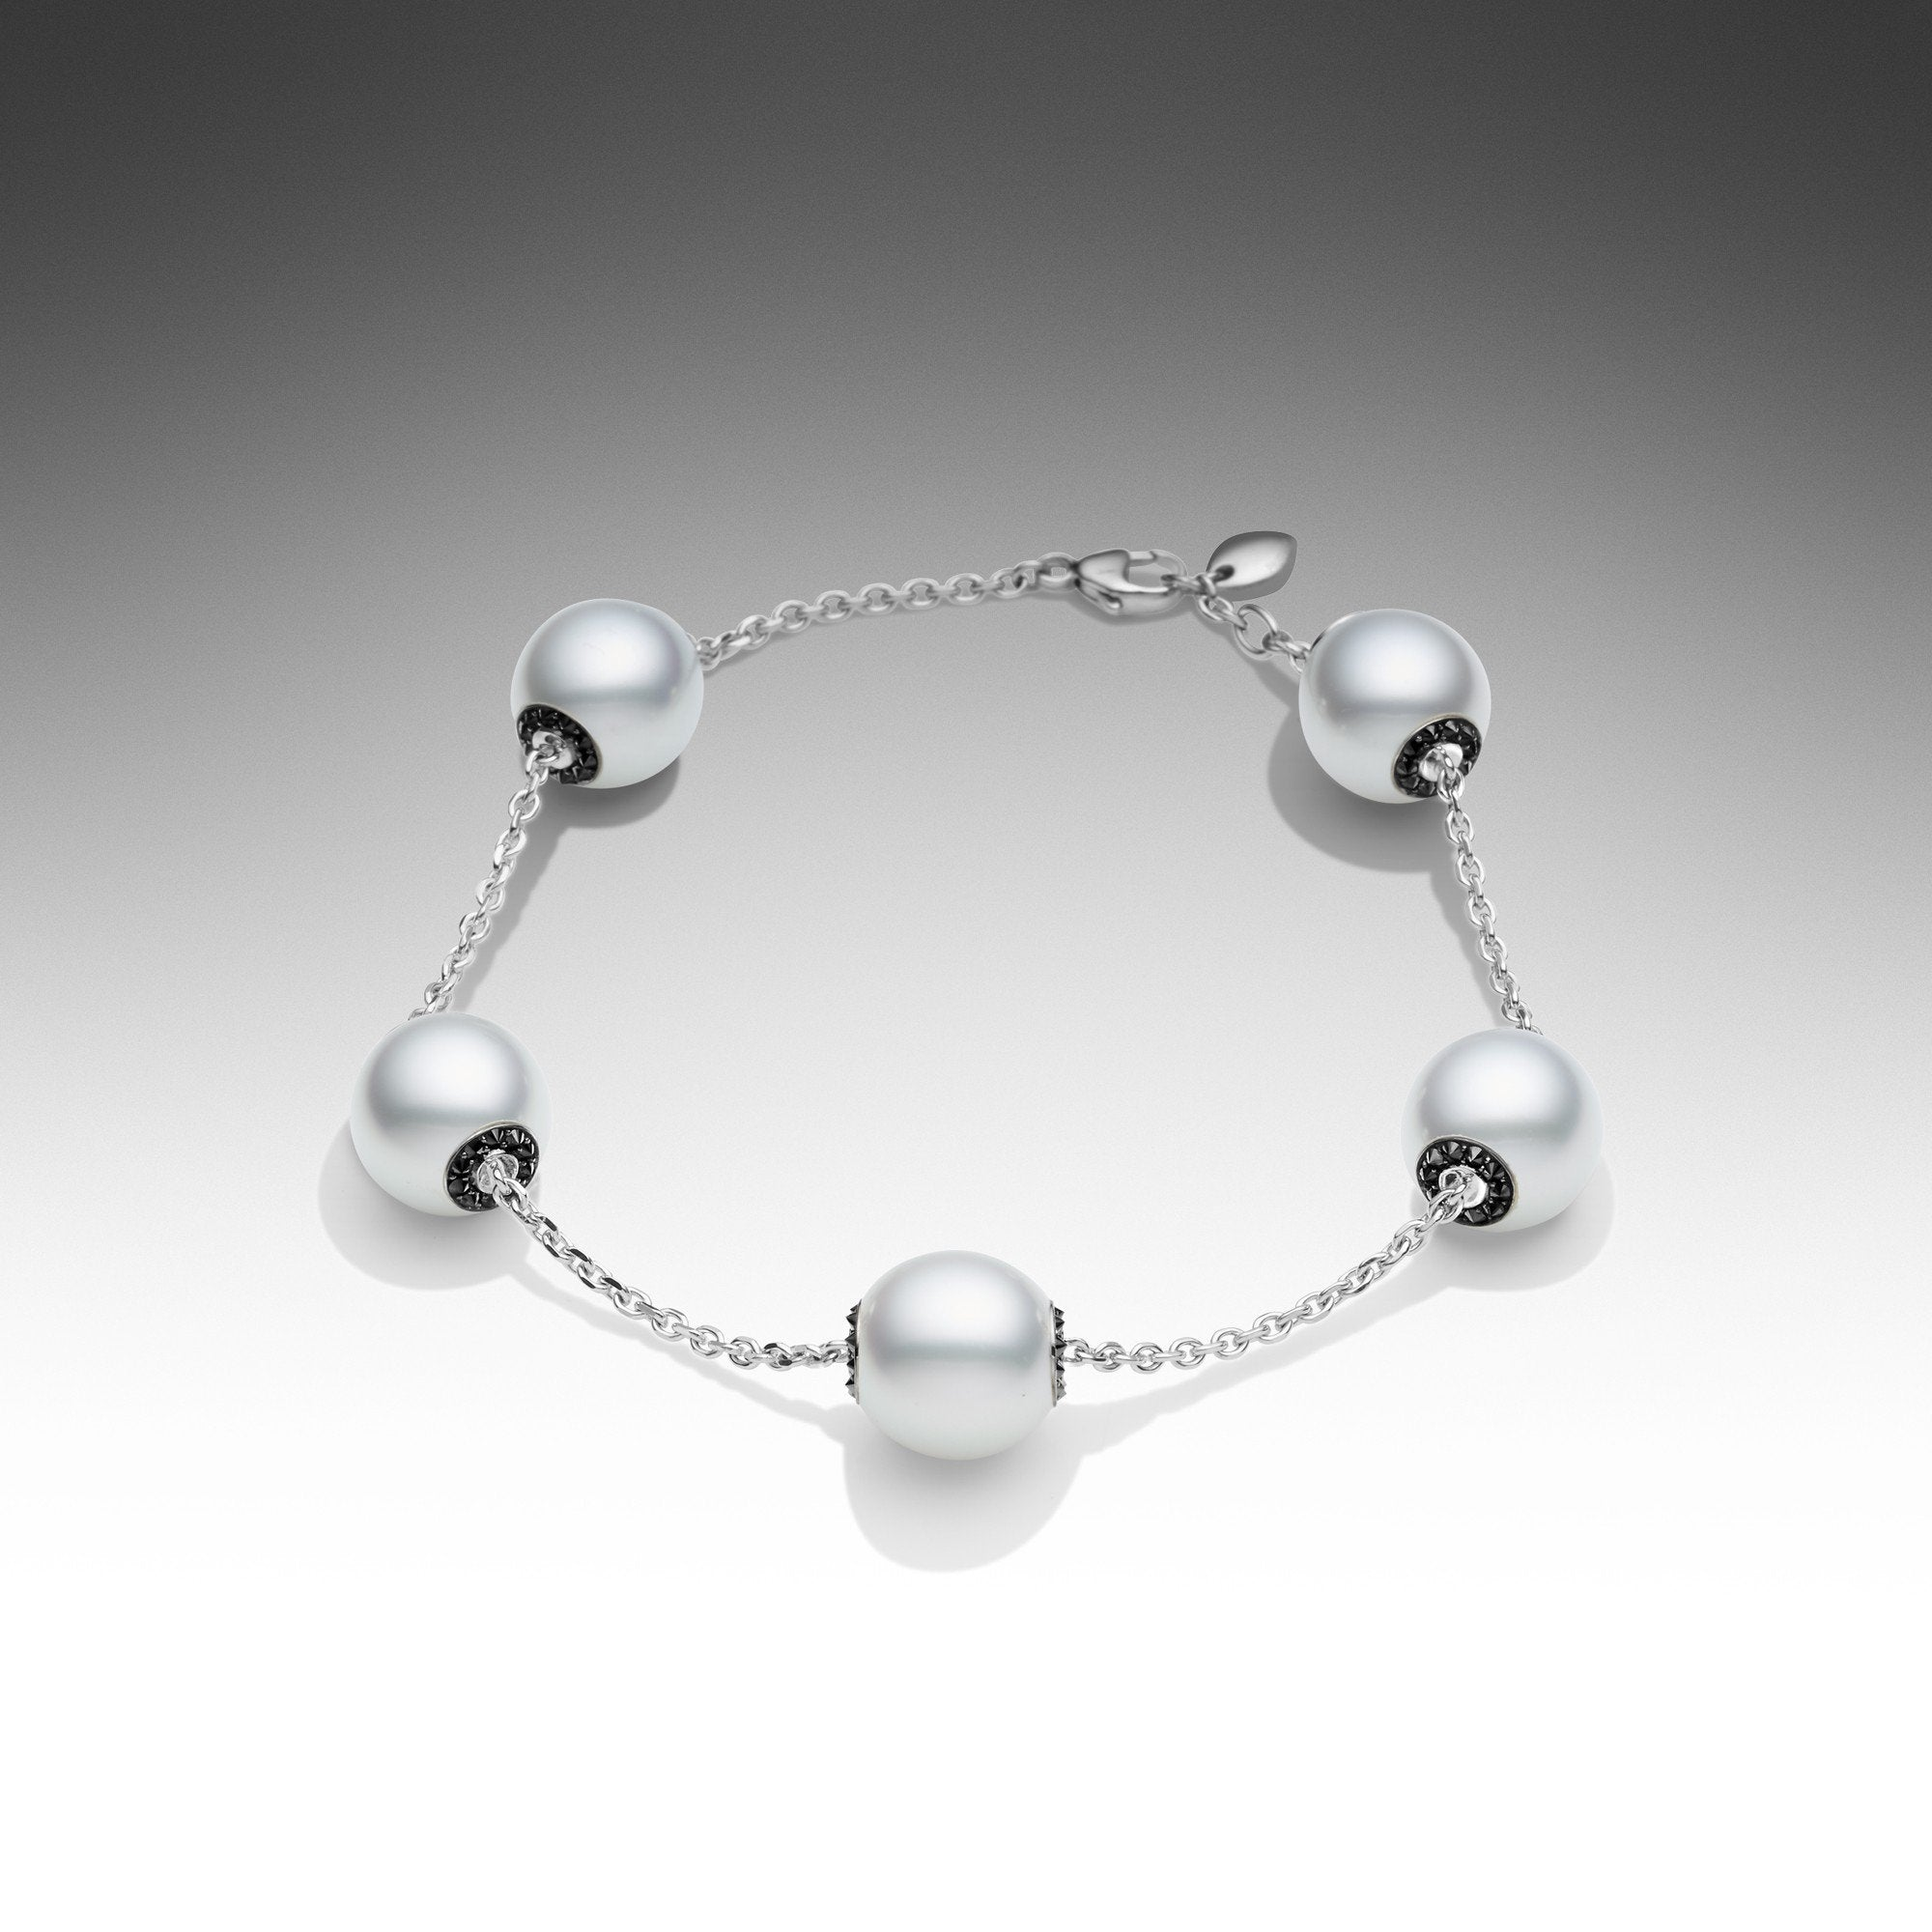 products touchstone bracelet black diamond pearl paspaley south sea